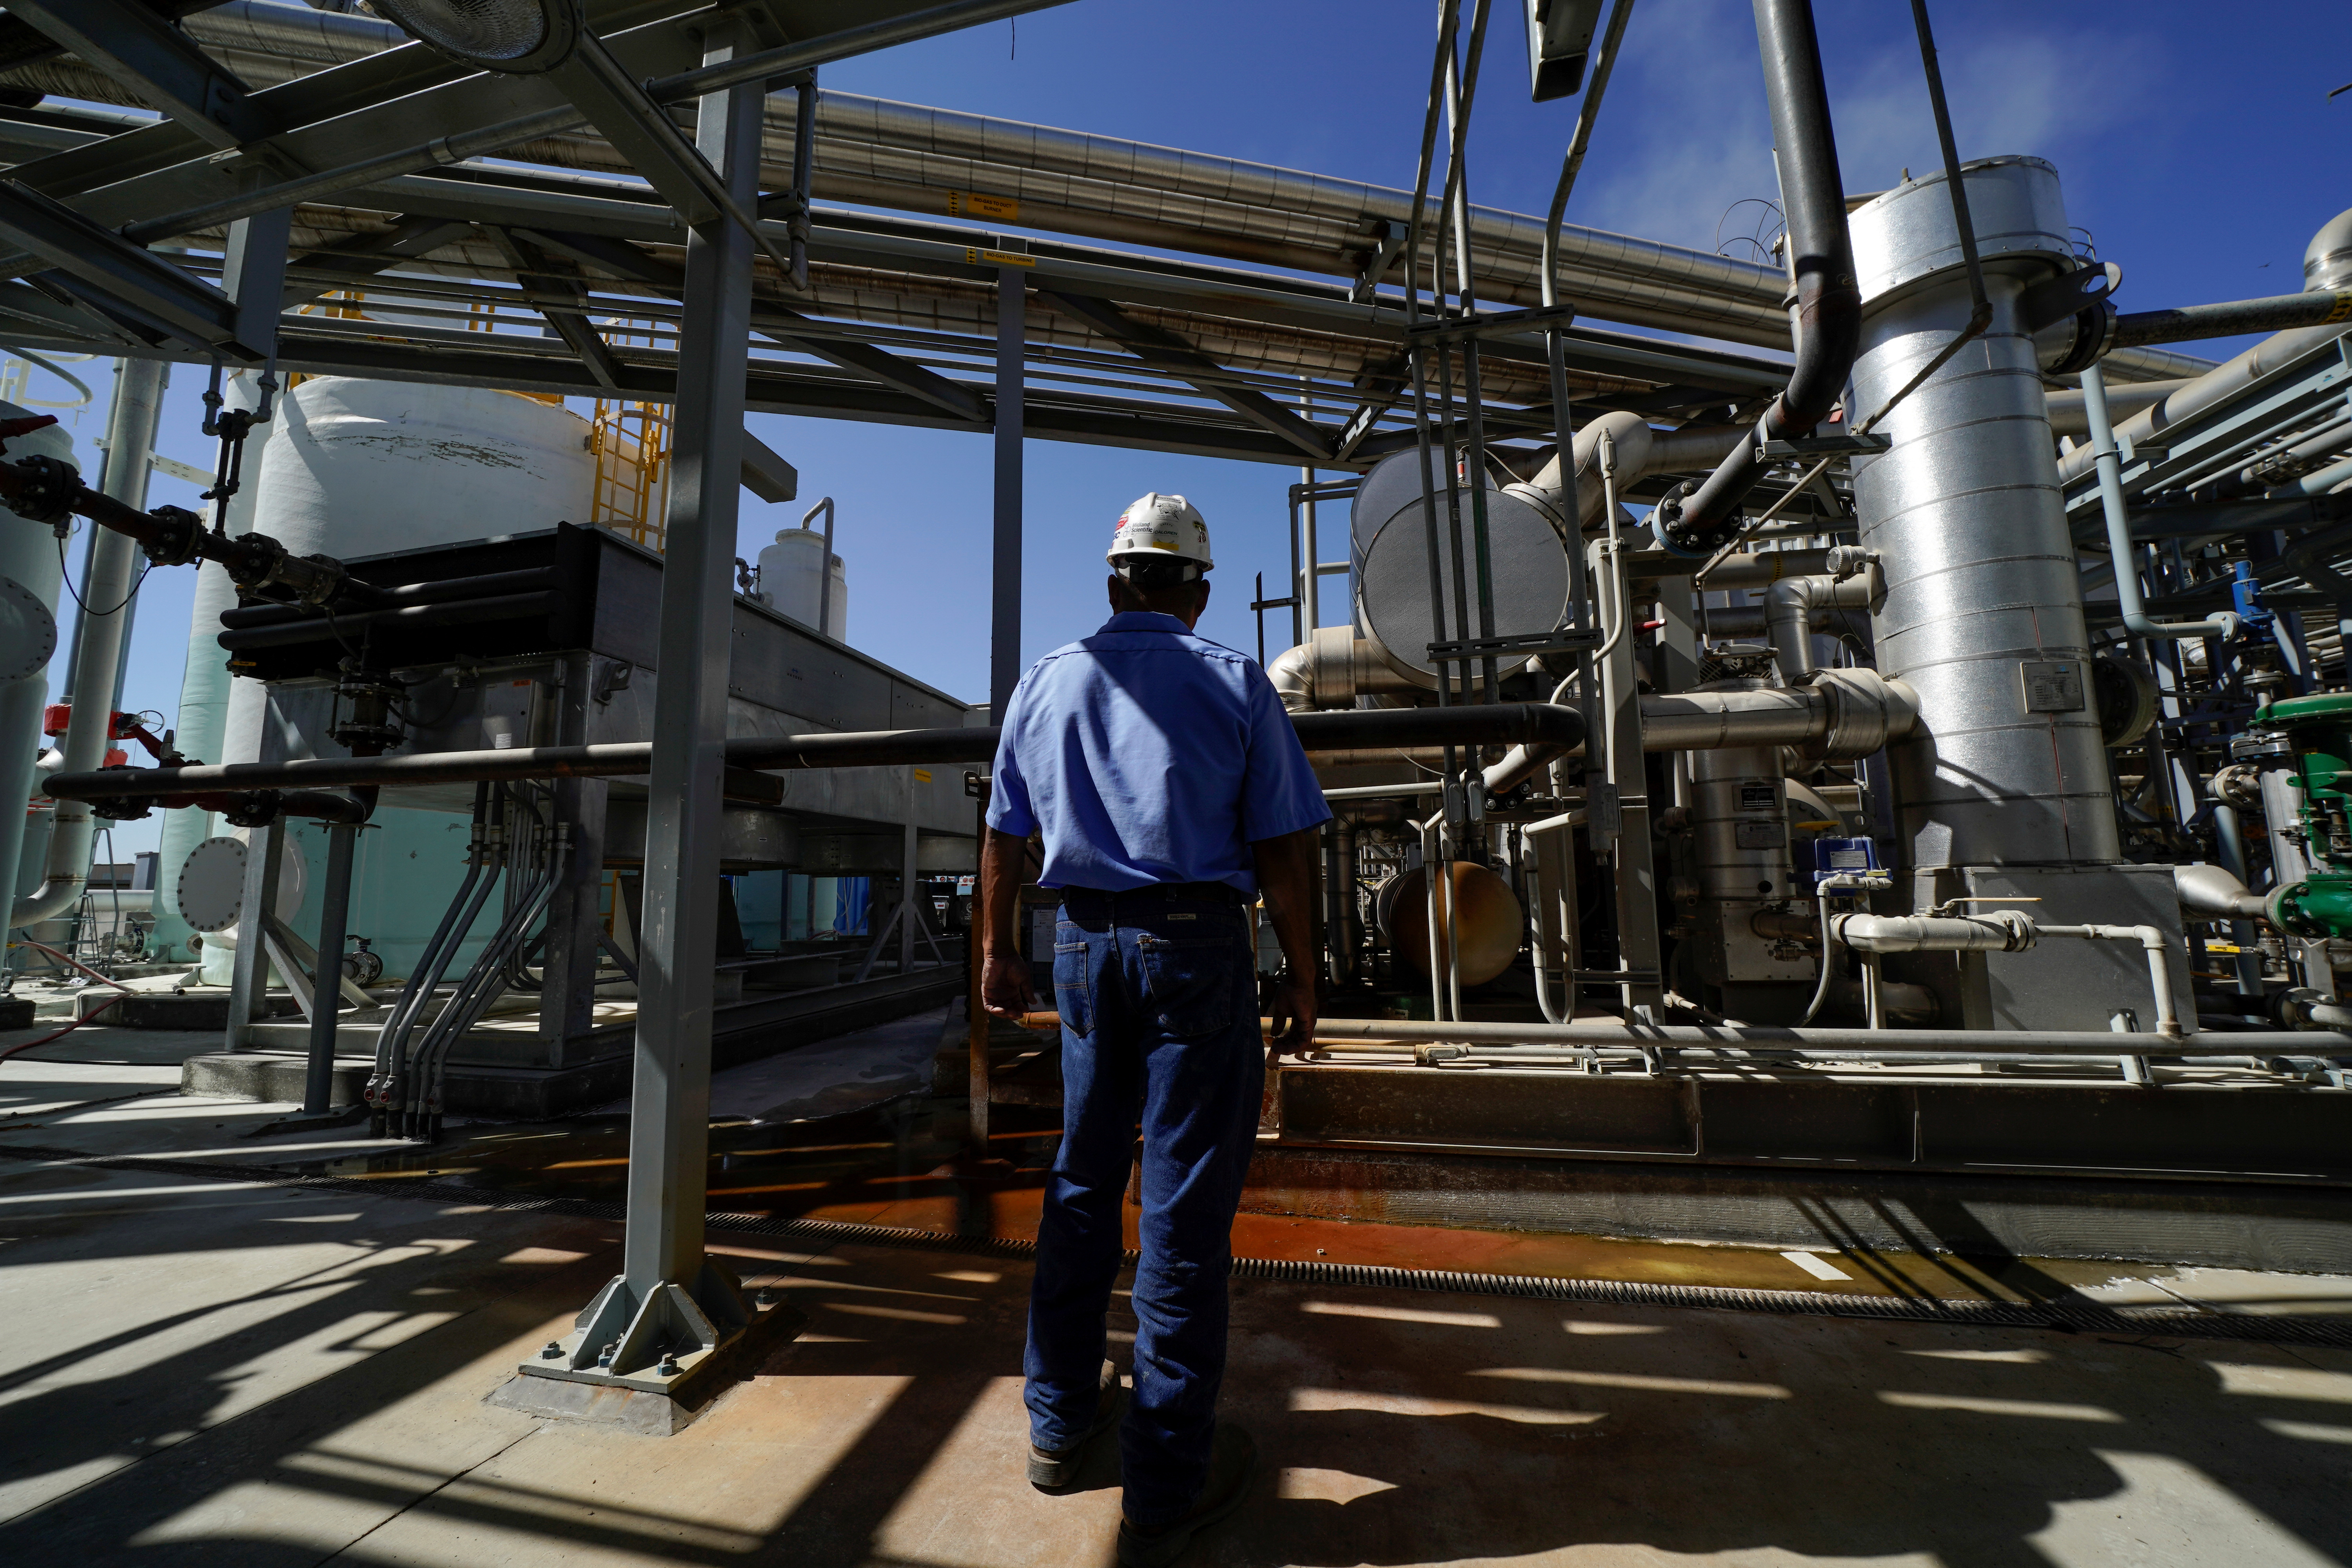 Calgren's renewable fuels facility that cleans dairy methane into natural gas is shown in Pixley, California, October 2, 2019. Picture taken October 2, 2019. REUTERS/Mike Blake